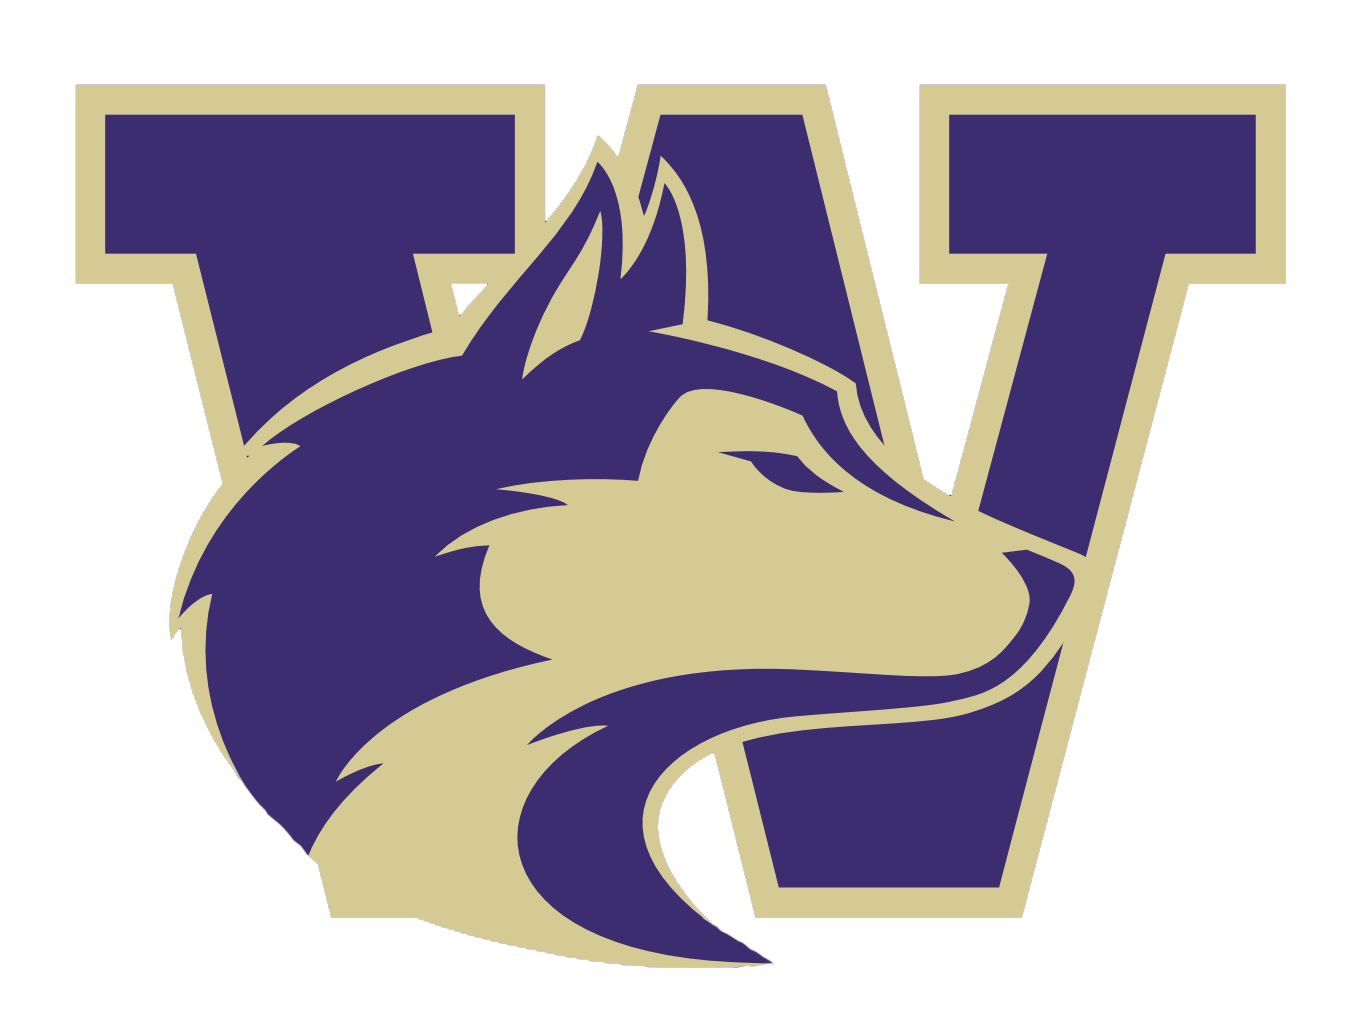 Clipart university of washington football picture black and white uw husky clipart - Clipground picture black and white